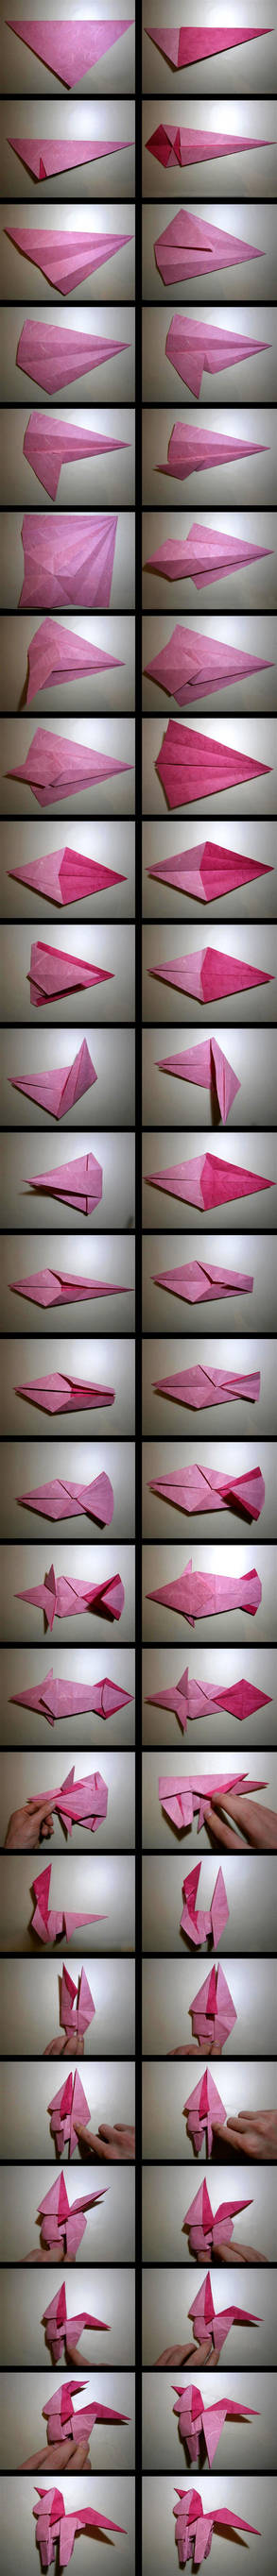 Pinkie Pie Origami Folding Process